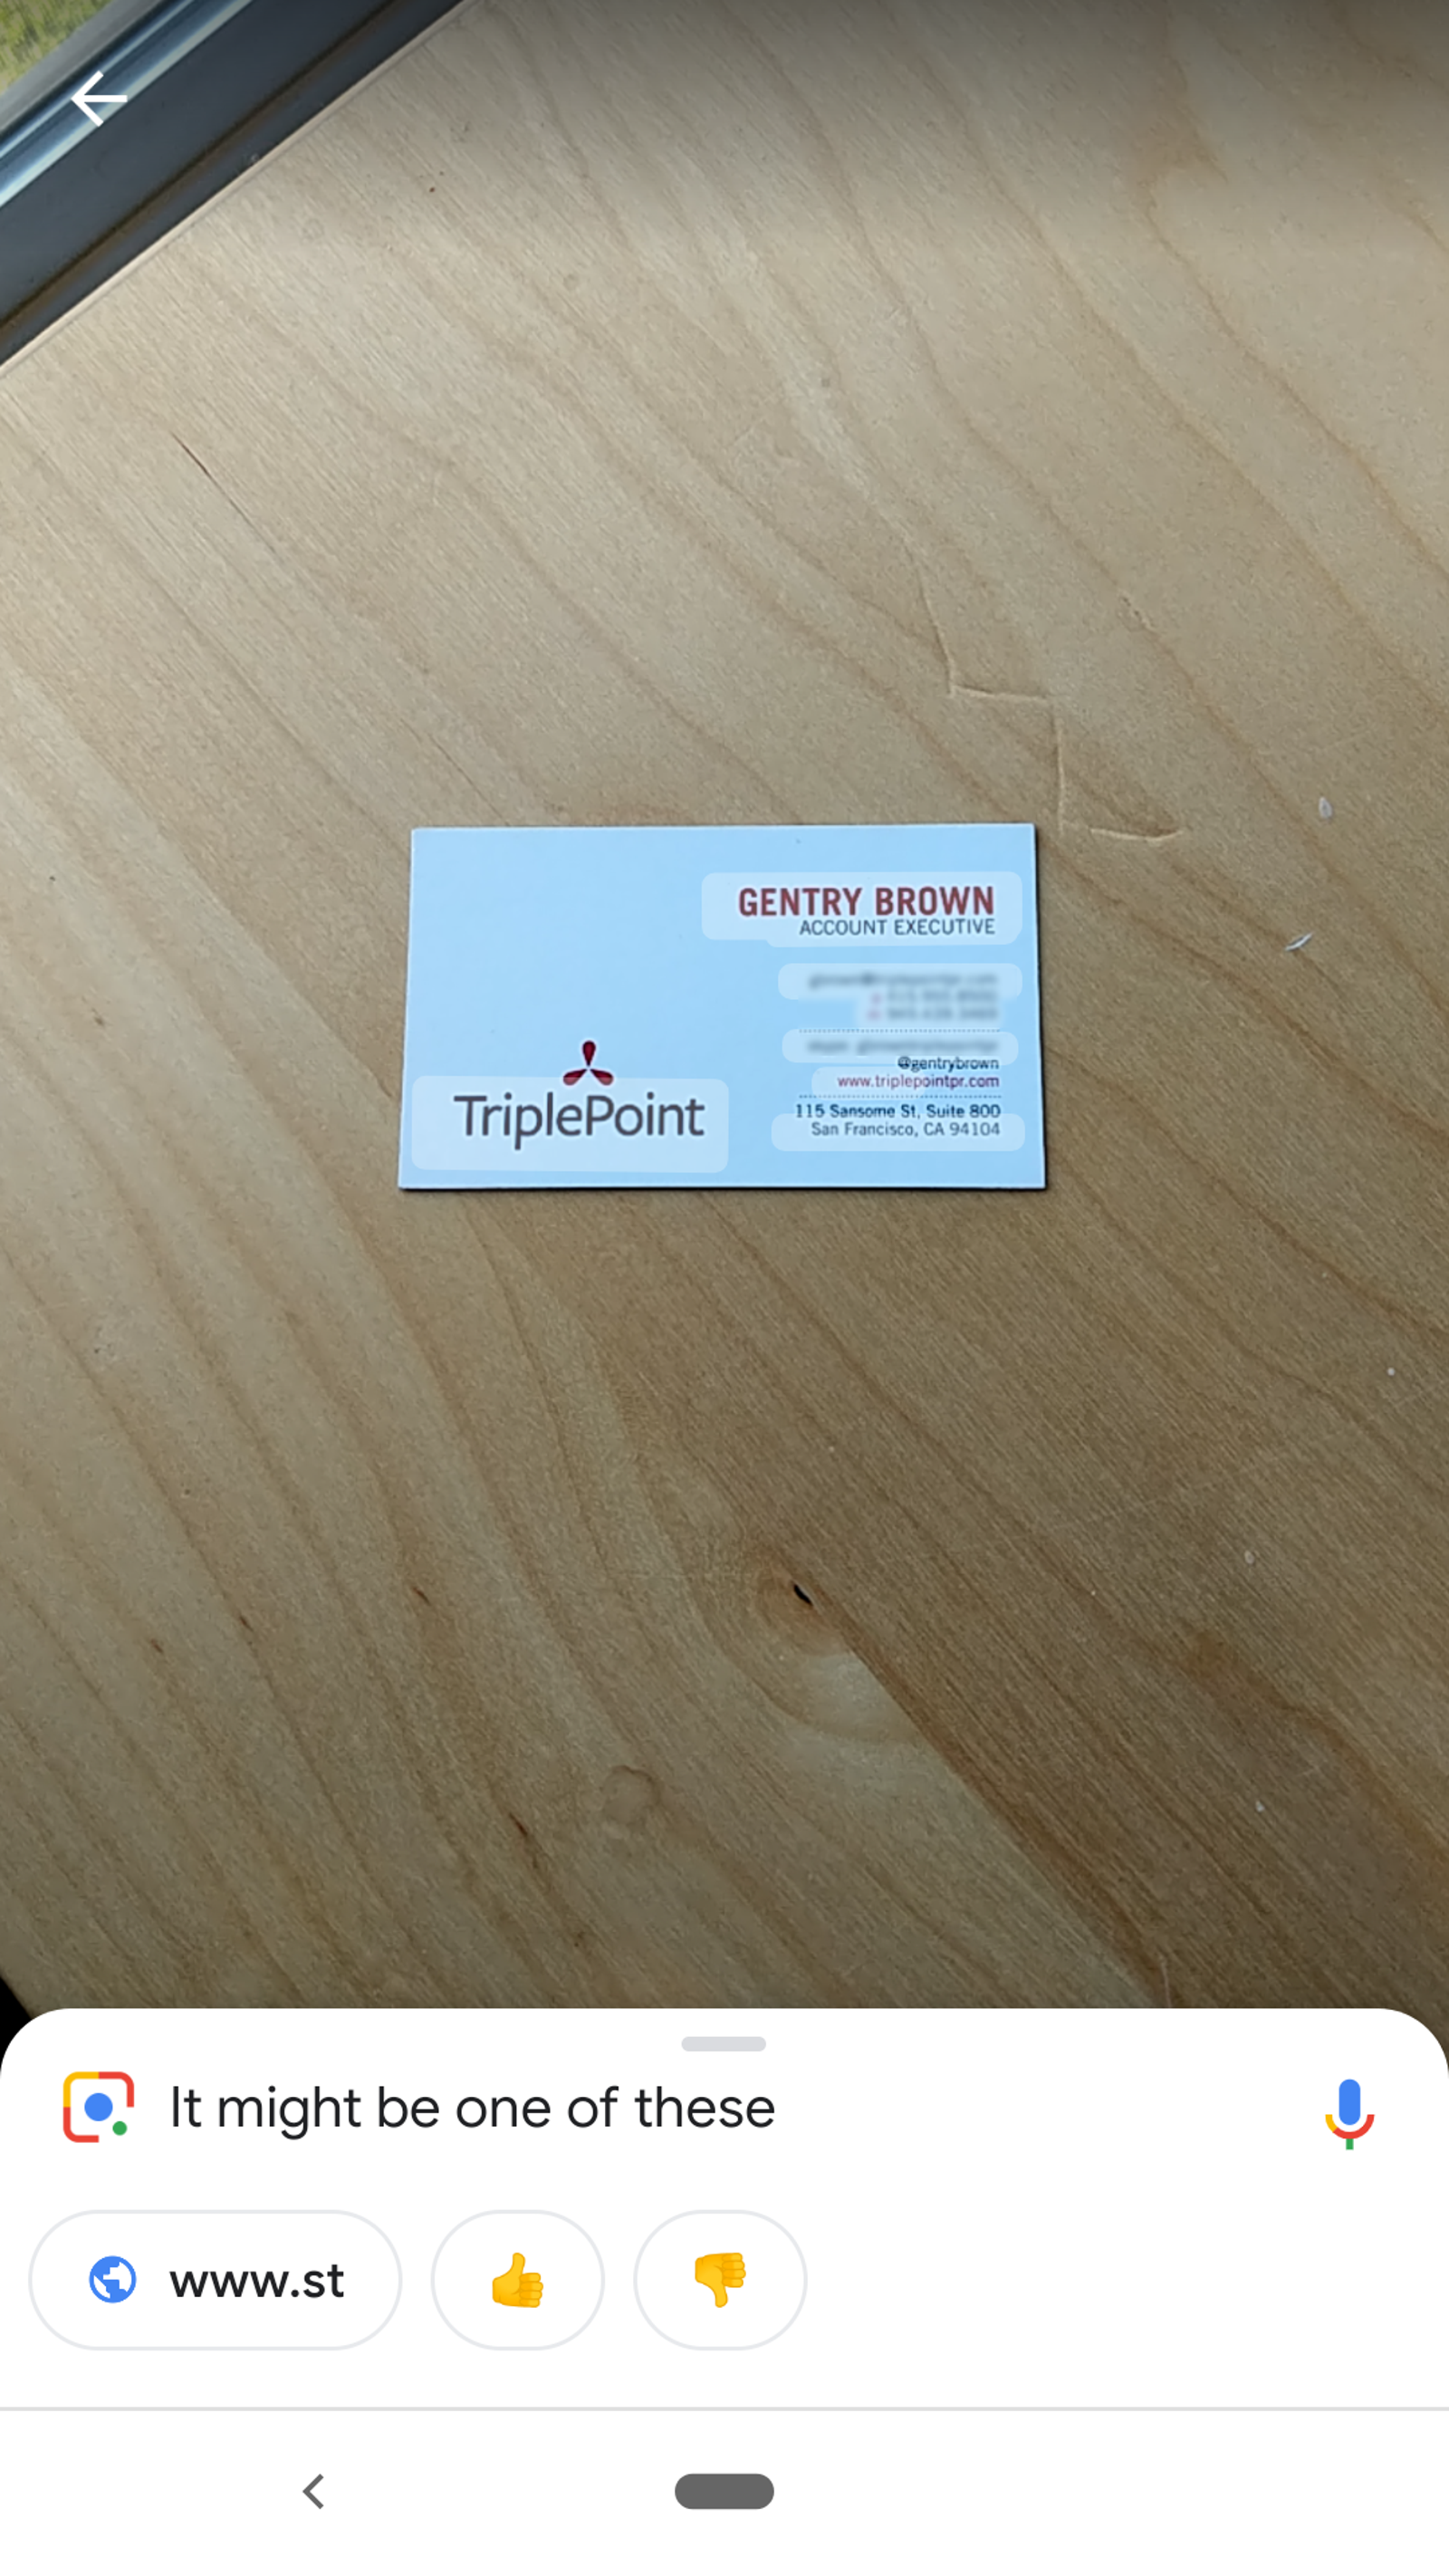 As I mentioned earlier, sometimes you just have to zoom in a bit closer in order for an image-recognition app to do anything. From a distance, Google Lens struggled with the business card.